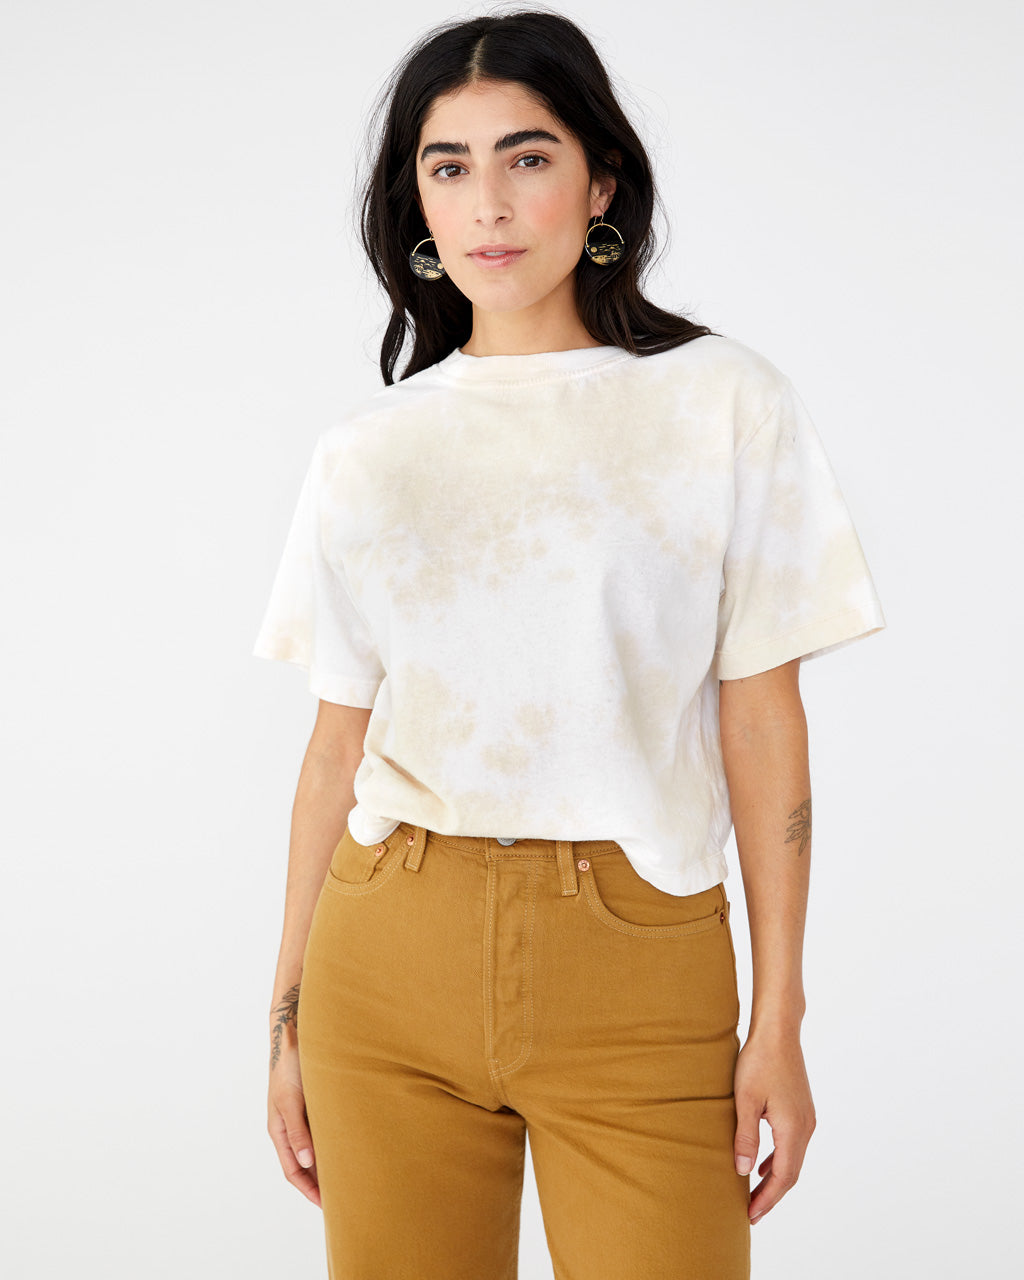 Light washed tie dye short sleeve crop tee from Richer Poorer shown on model